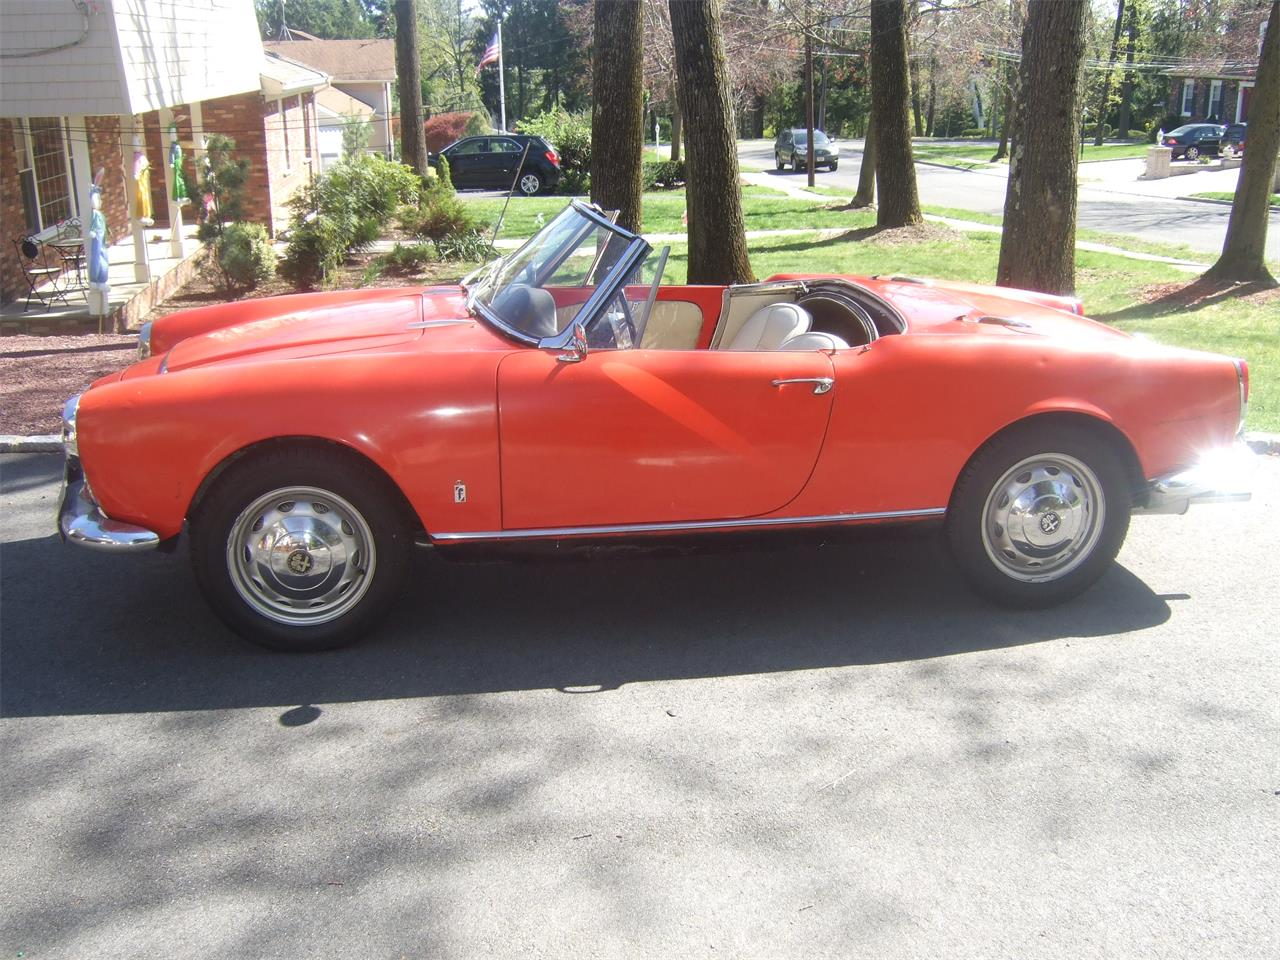 Large Picture of Classic '64 Giulietta Spider - $38,000.00 - Q08N